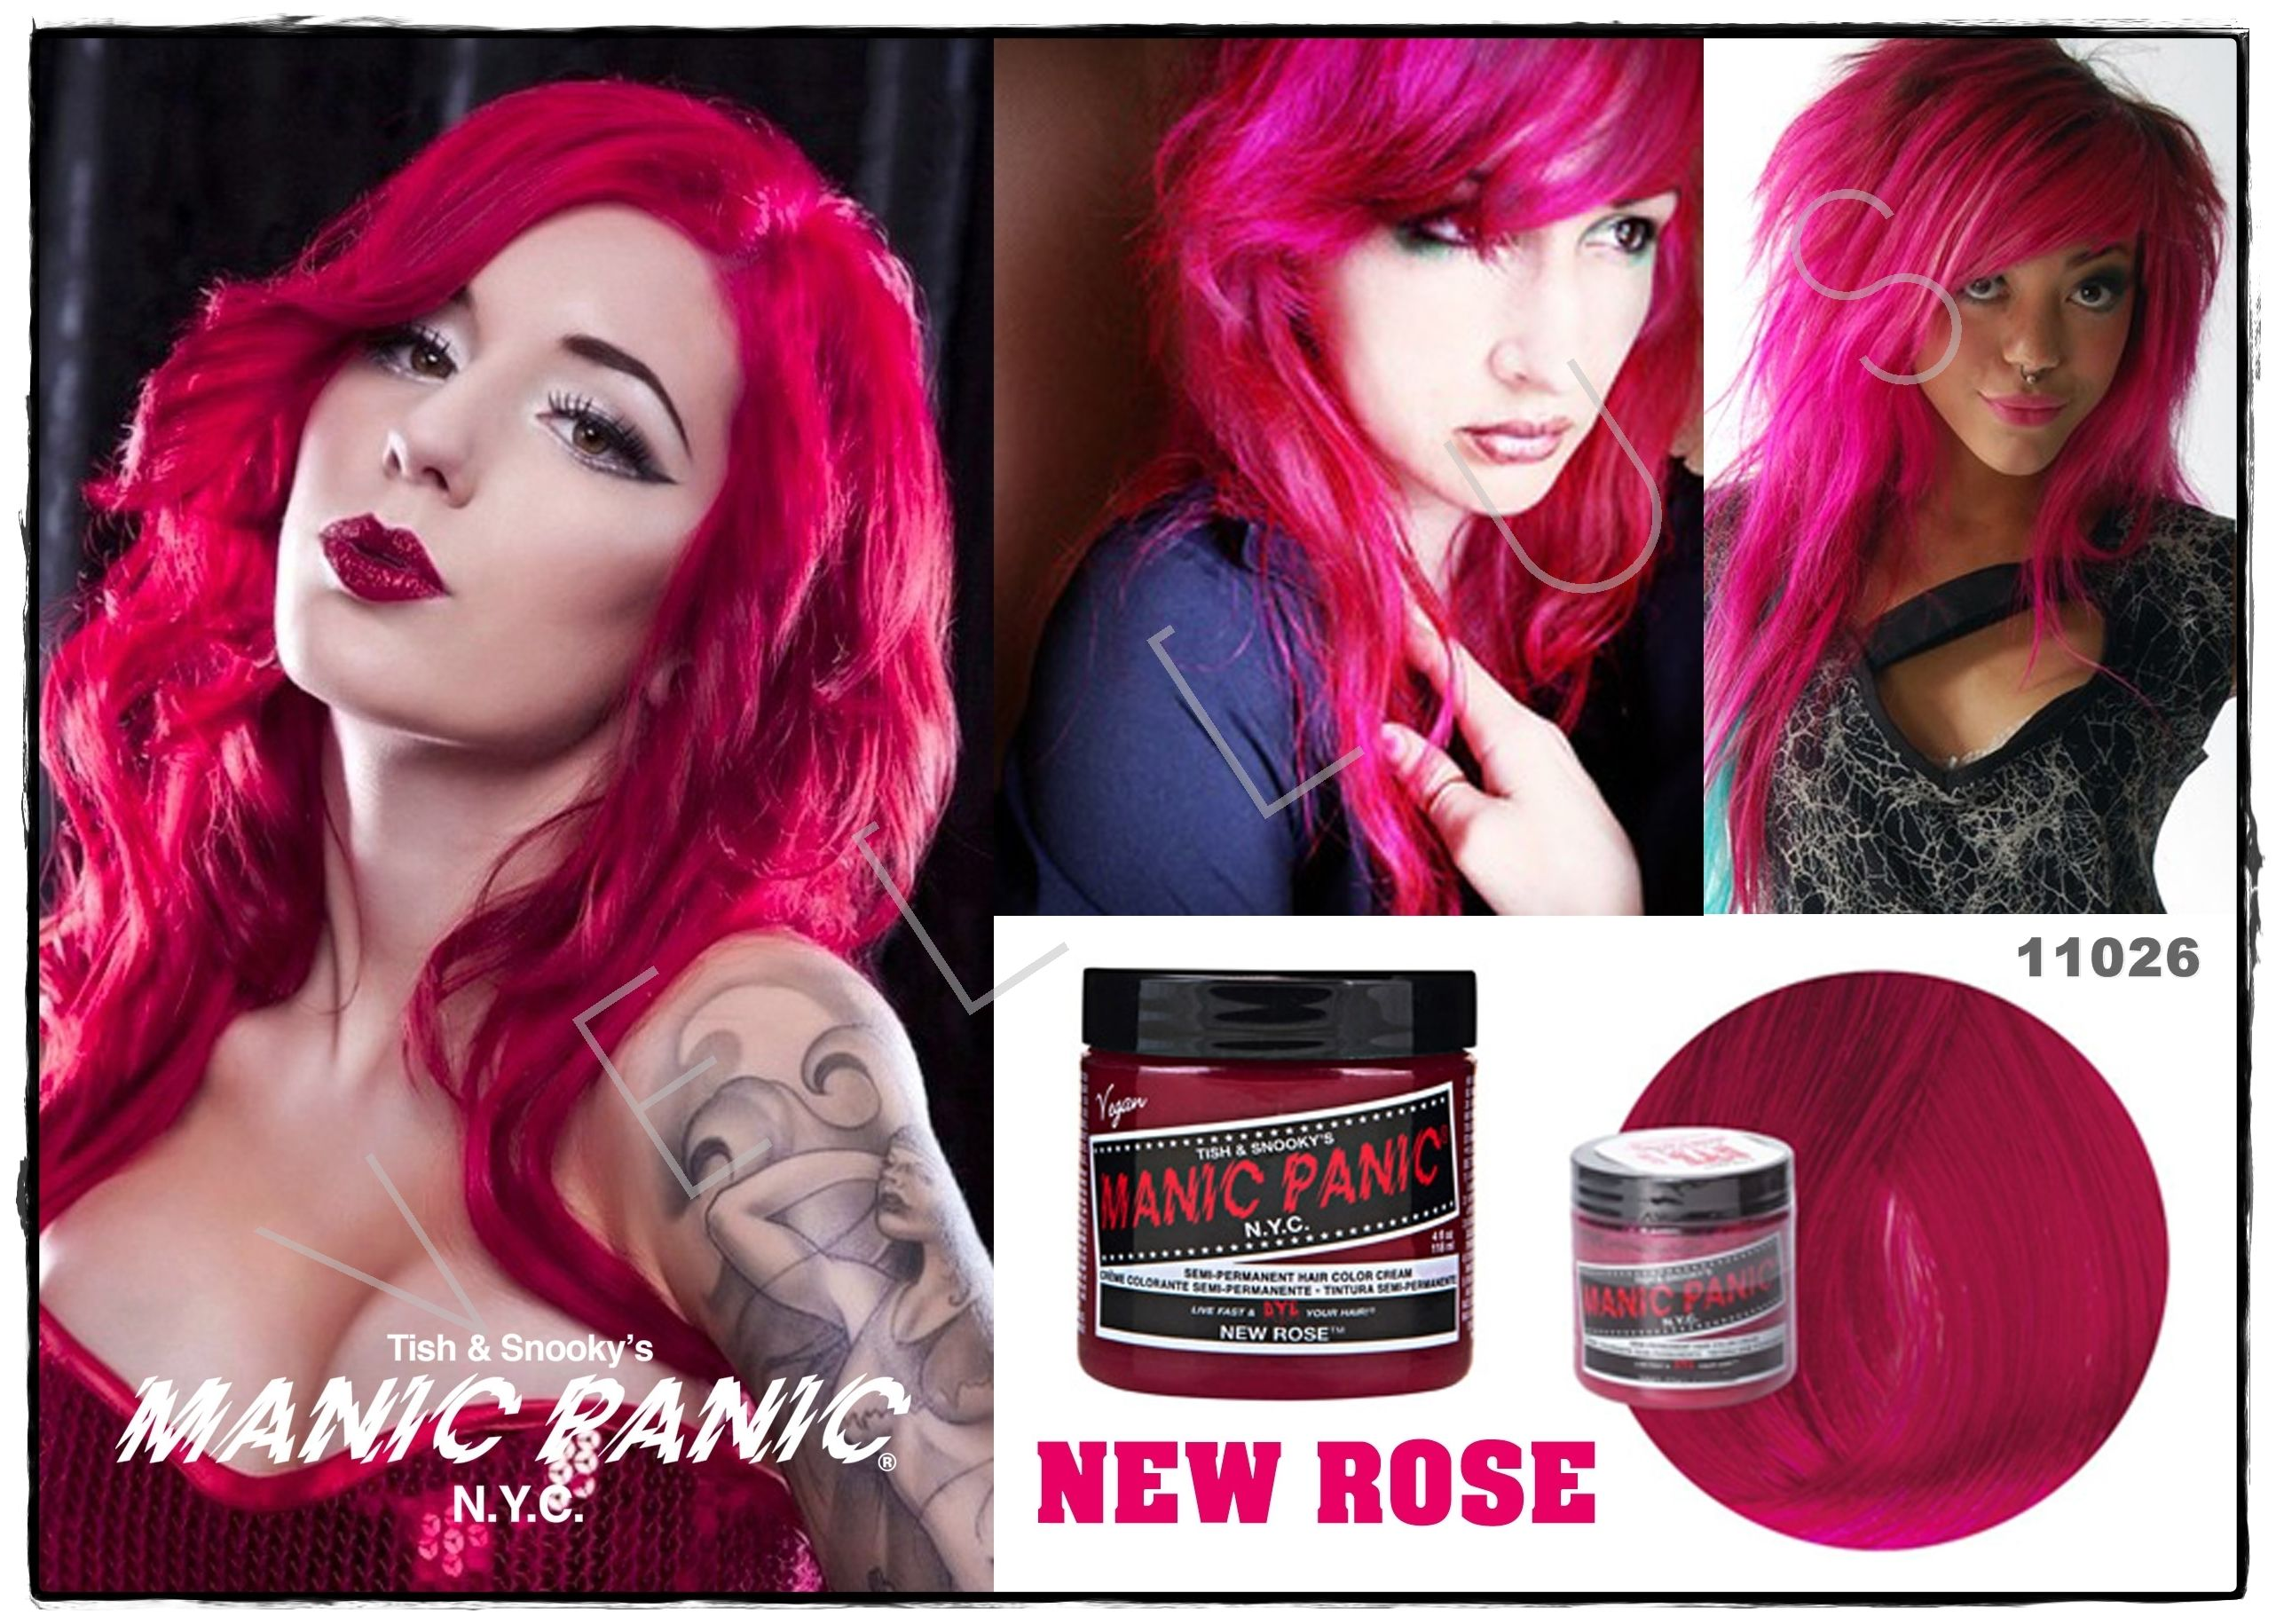 Manic Panic Classic New Rose Vellus Hair Studio 83a Tanjong Pagar Road S 088504 Tel 62246566 Beauty Hair Color Diy Hair Dye Dyed Hair